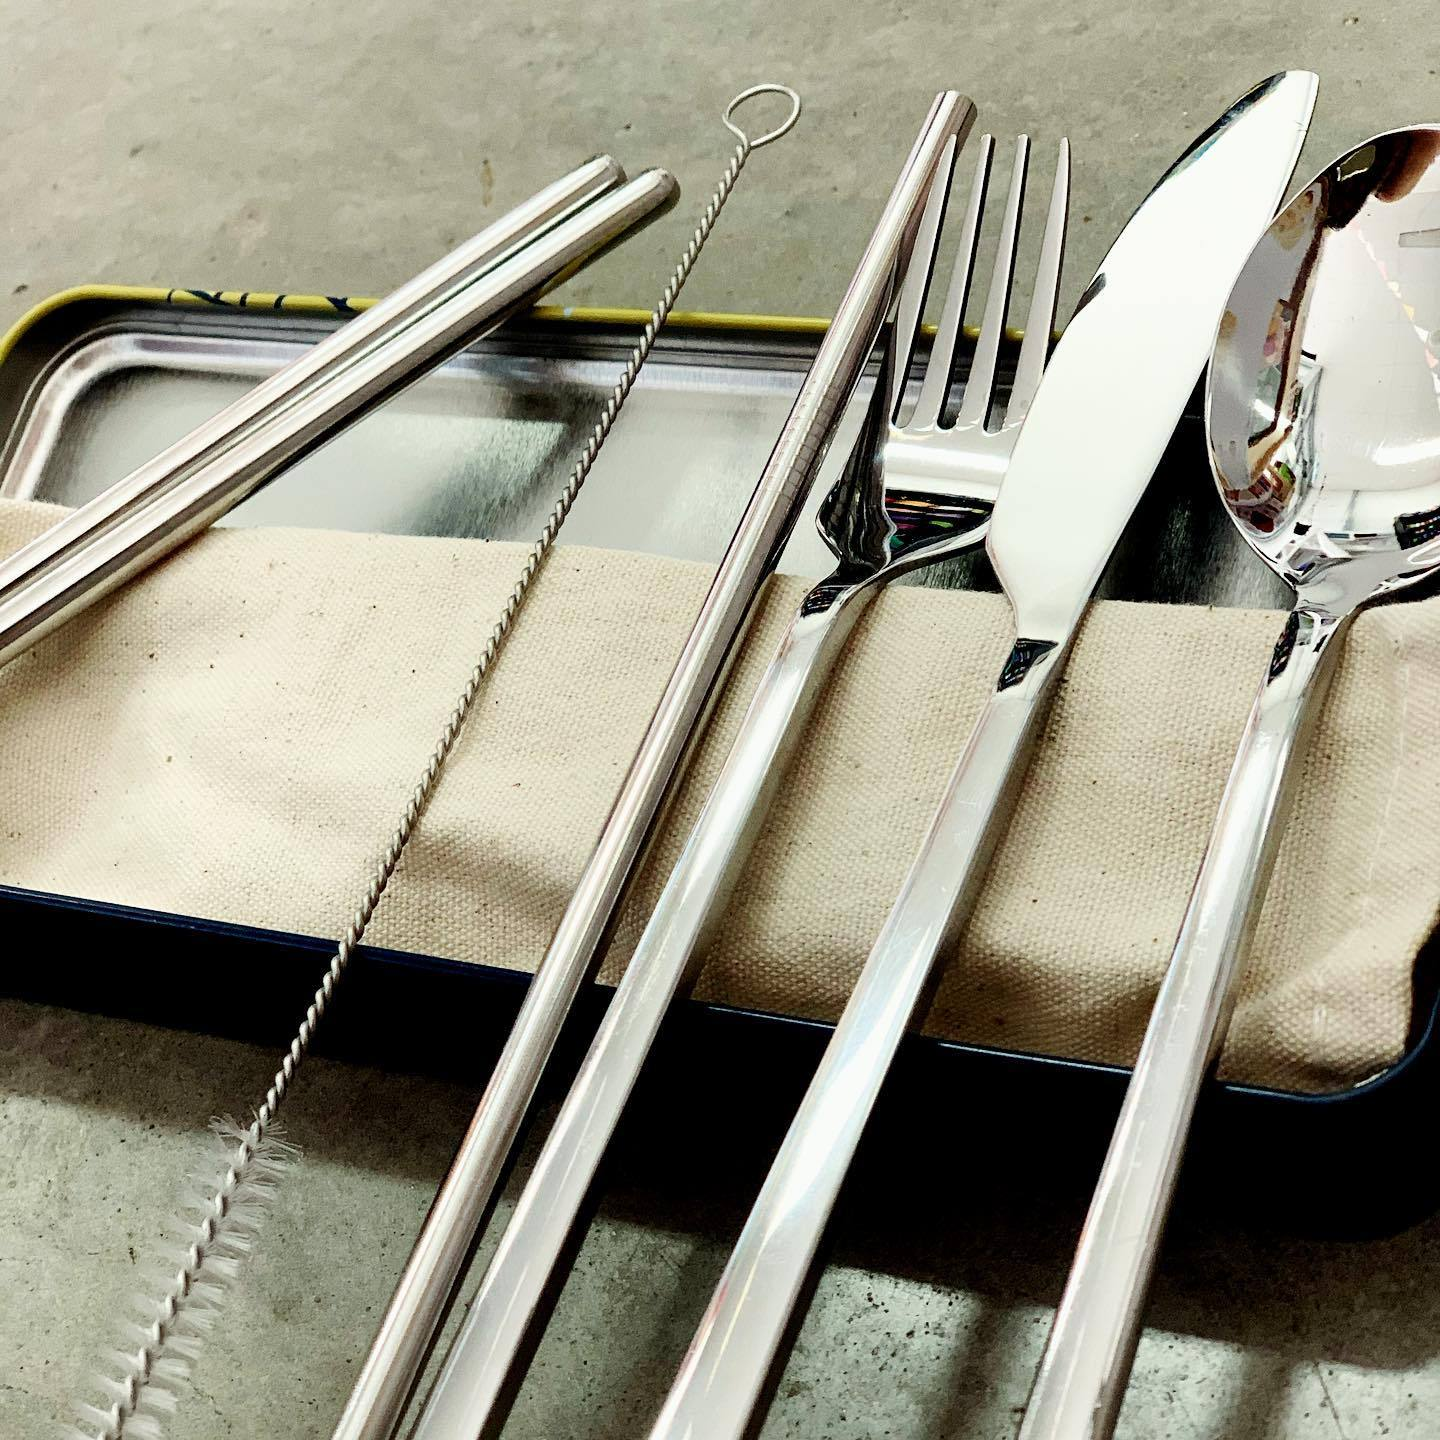 Reusable Cutlery Travel Set Retro Kitchen Lifestyle at Little Earth Nest Eco Shop